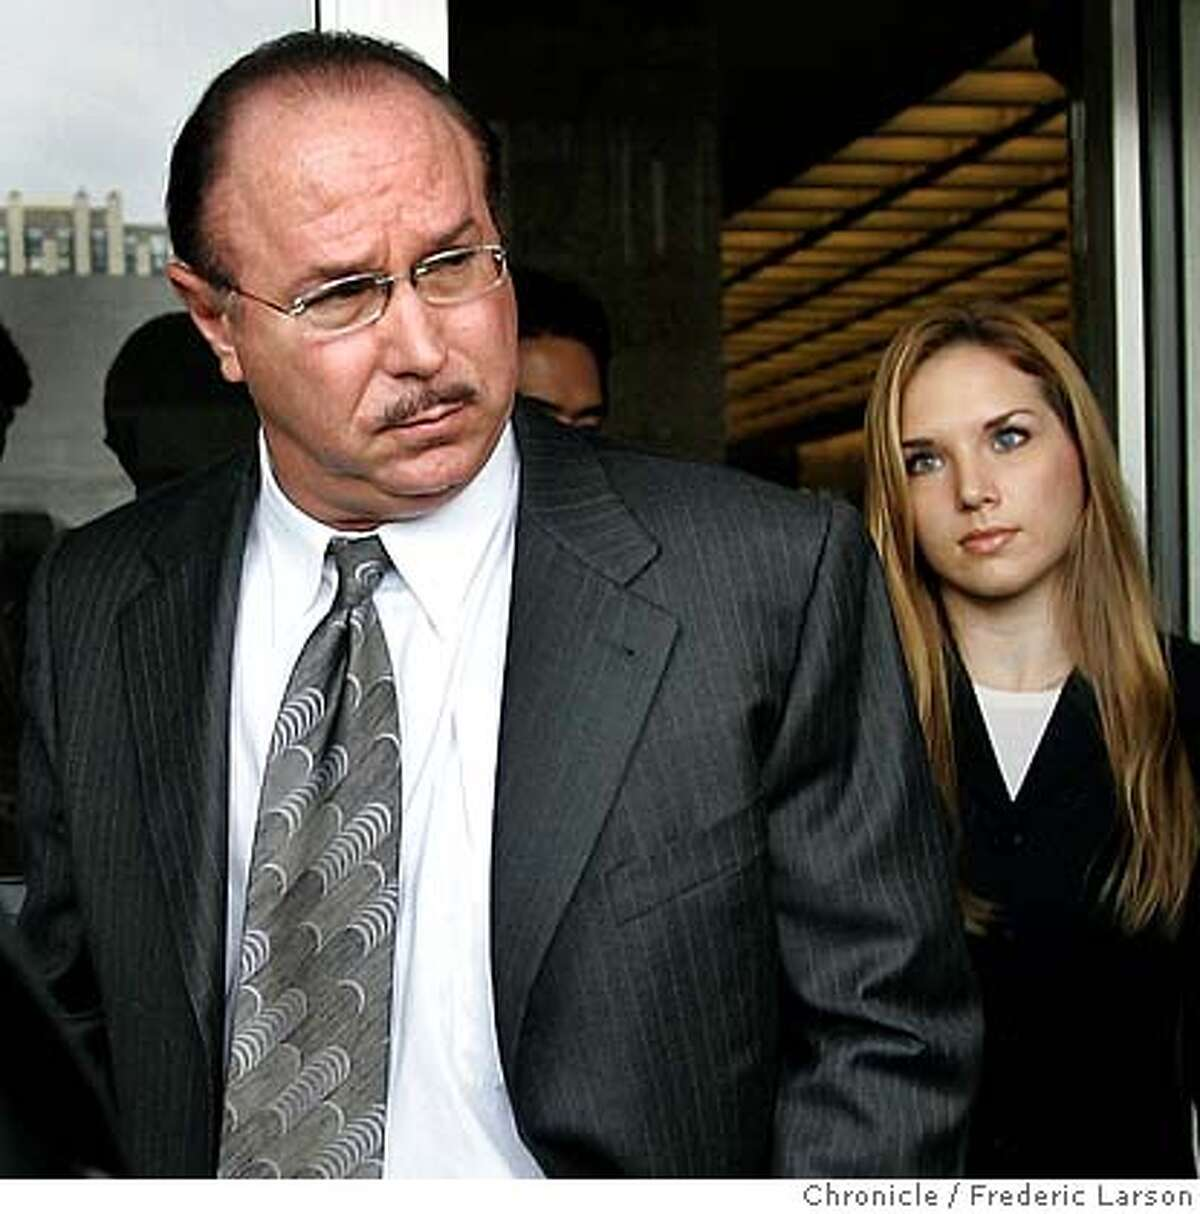 BALCO_0016a_fl.jpg Victor Conte left with his daughter Veronica Ekhardt and his attorneys from the San Francisco Federal Court house after being sentenced to eight months Tuesday as part of a plea deal for his role as mastermind behind a scheme to provide professional athletes with undetectable performance-enhancing drugs. Conte, who will spend four months in prison and four months in home confinement, started the Bay Area Laboratory Co-Operative, which, according to court records, counted dozens of prominent athletes among its clients, including Barry Bonds, Jason Giambi, Marion Jones and others. The case prompted pro sports to stiffen steroid policies and thrust performance-enhancing drugs into the spotlight. THG, a once-unknown steroid discovered in the investigation, is now banned throughout sports. Conte pleaded guilty in July to money laundering and a steroid distribution charge; dozens of counts were dropped. 10/18/05 San Francisco CA Frederic Larson The San Francisco Chronicle Ran on: 10-19-2005 Victor Conte(left,) founder of Burlingames BALCO lab, leaves the San Francisco federal courthouse with his daughter Veronica Ekhardt after being sentenced. Ran on: 10-19-2005 BALCO founder Victor Conte leaves San Franciscos federal courthouse with his daughter Veronica Ekhardt after being sentenced to four months in prison and four months home confinement. Ran on: 10-19-2005 BALCO founder Victor Conte leaves San Franciscos federal courthouse with his daughter Veronica Ekhardt after being sentenced to four months in prison and four months home confinement.Ran on: 02-07-2006 Victor Conte Ran on: 06-23-2006 Victor Conte exchanged e-mails with a Chronicle reporter about secret grand jury proceedings, a court filing says. Ran on: 06-23-2006 Victor Conte exchanged e-mails with a...